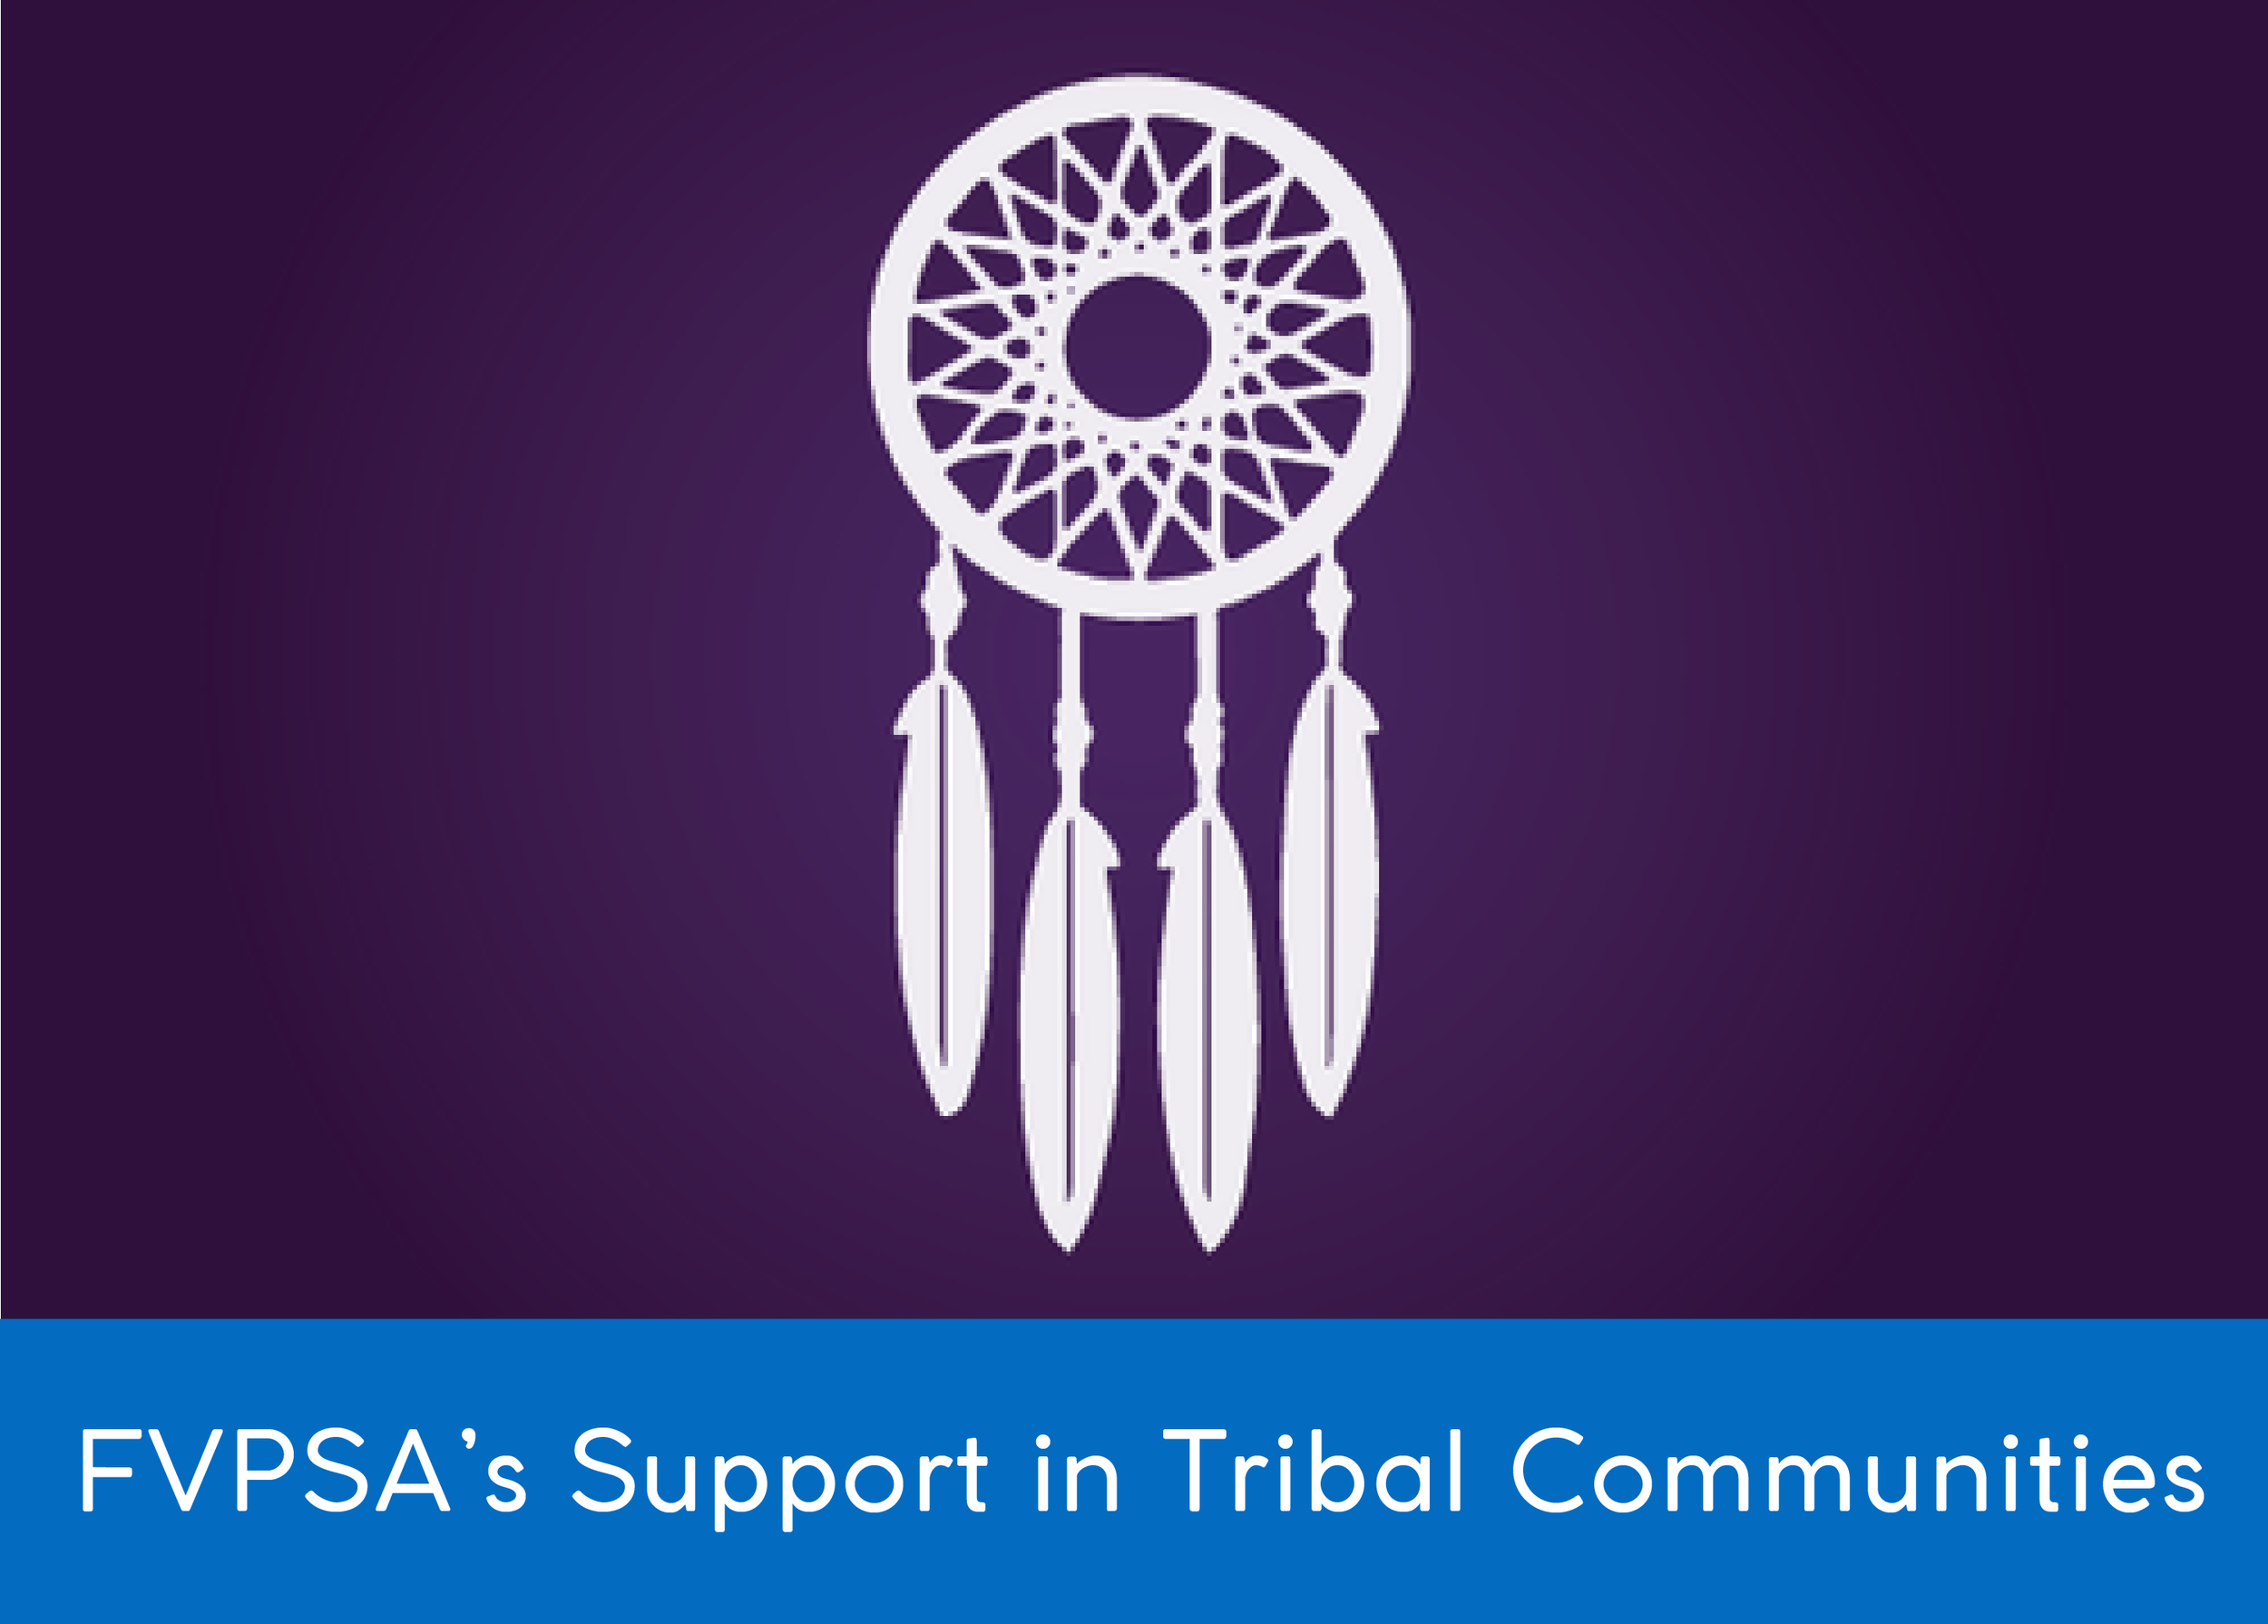 How as FVPSA helped build response to domestic violence in Indian Country?